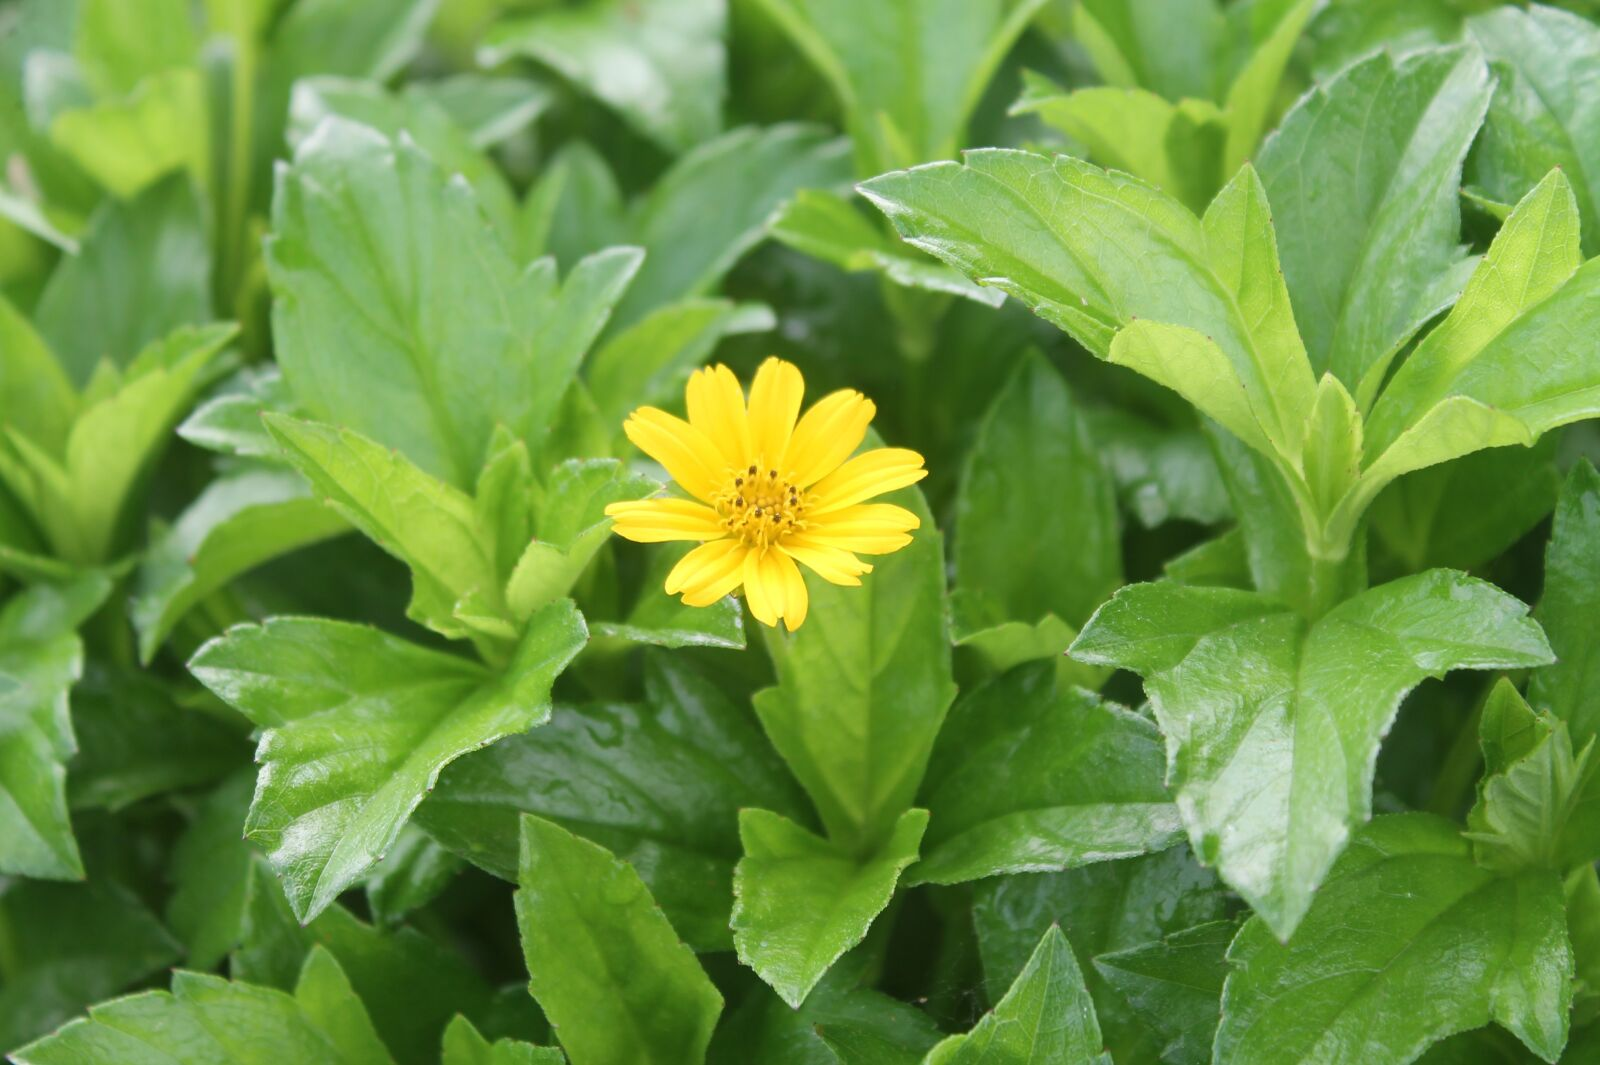 """Canon EOS 1100D (EOS Rebel T3 / EOS Kiss X50) sample photo. """"Flowers, flower, plant"""" photography"""